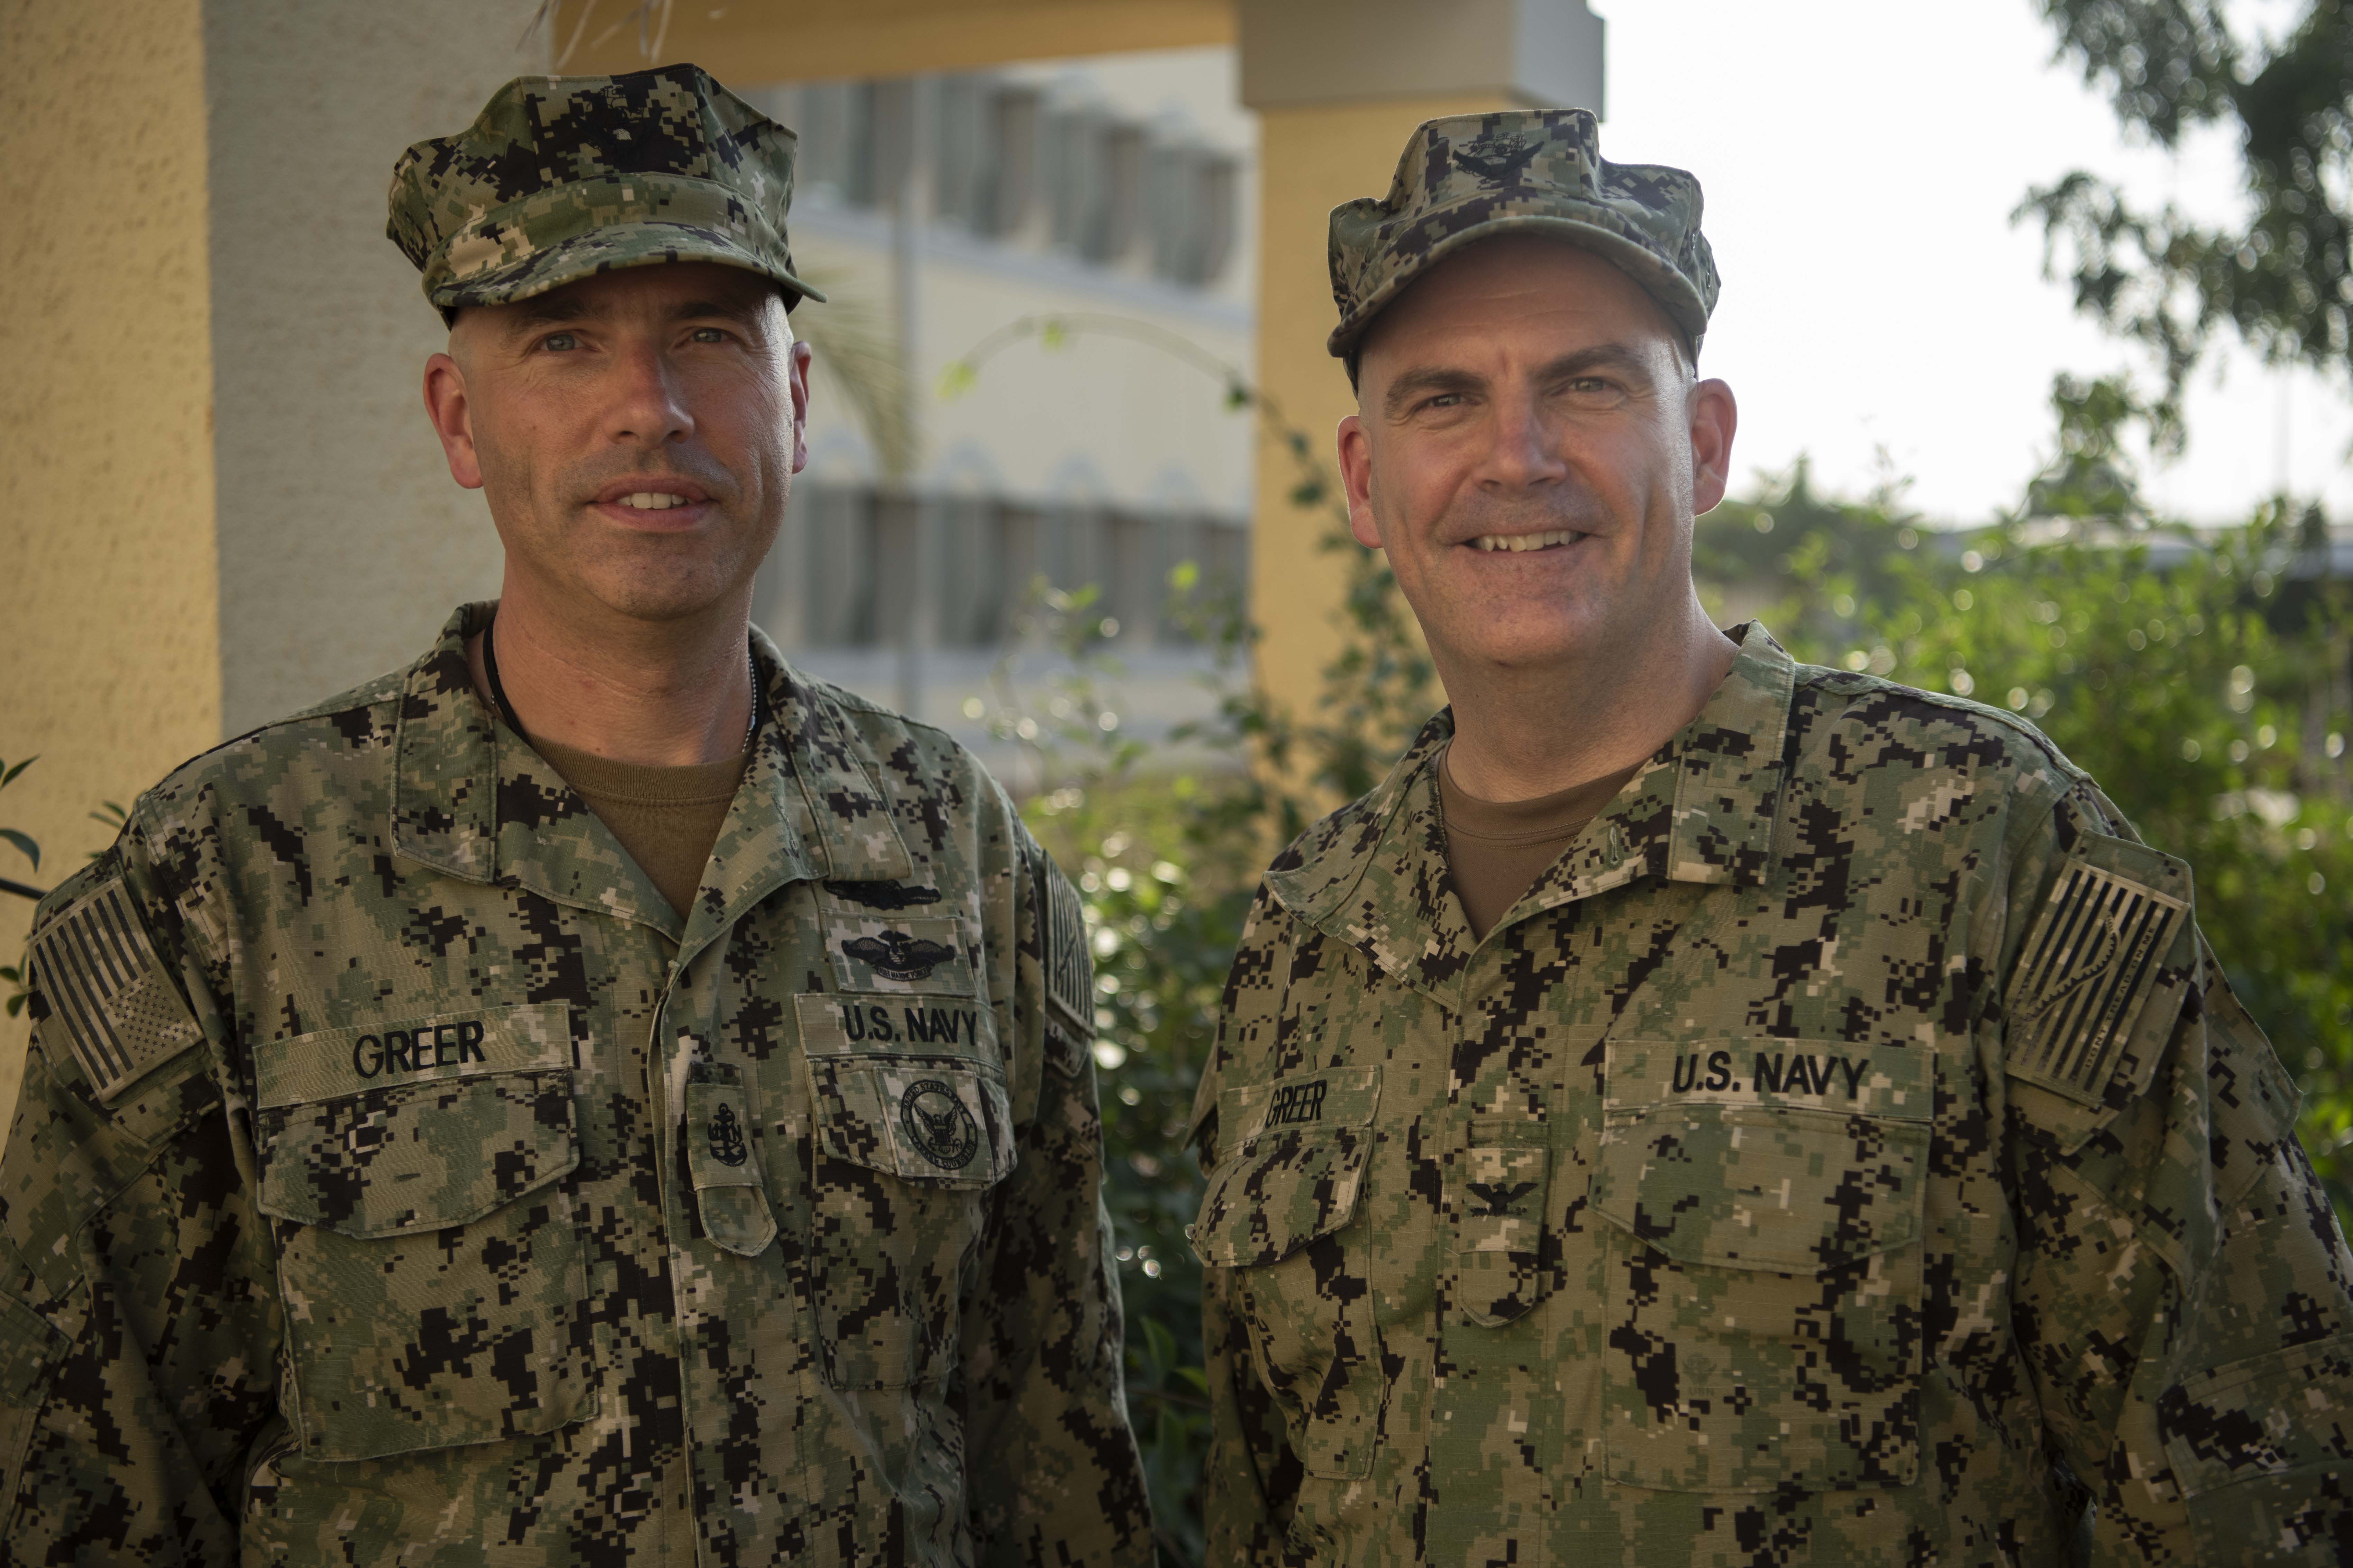 U.S. Navy Chief Hospital Corpsman Tim Greer, left, medical department head for Coastal Riverine Squadron-1 Forward, meets with his brother, Capt. Christopher Greer, staff judge advocate, Combined Joint Task Force-Horn of Africa, at Camp Lemonnier, Djibouti, 11 Feb. 2020. The Greer brothers are from Wilmington, Delaware, and were deployed with each other for about eight months. (U.S. Air Force photo by Master Sgt. Brok McCarthy)